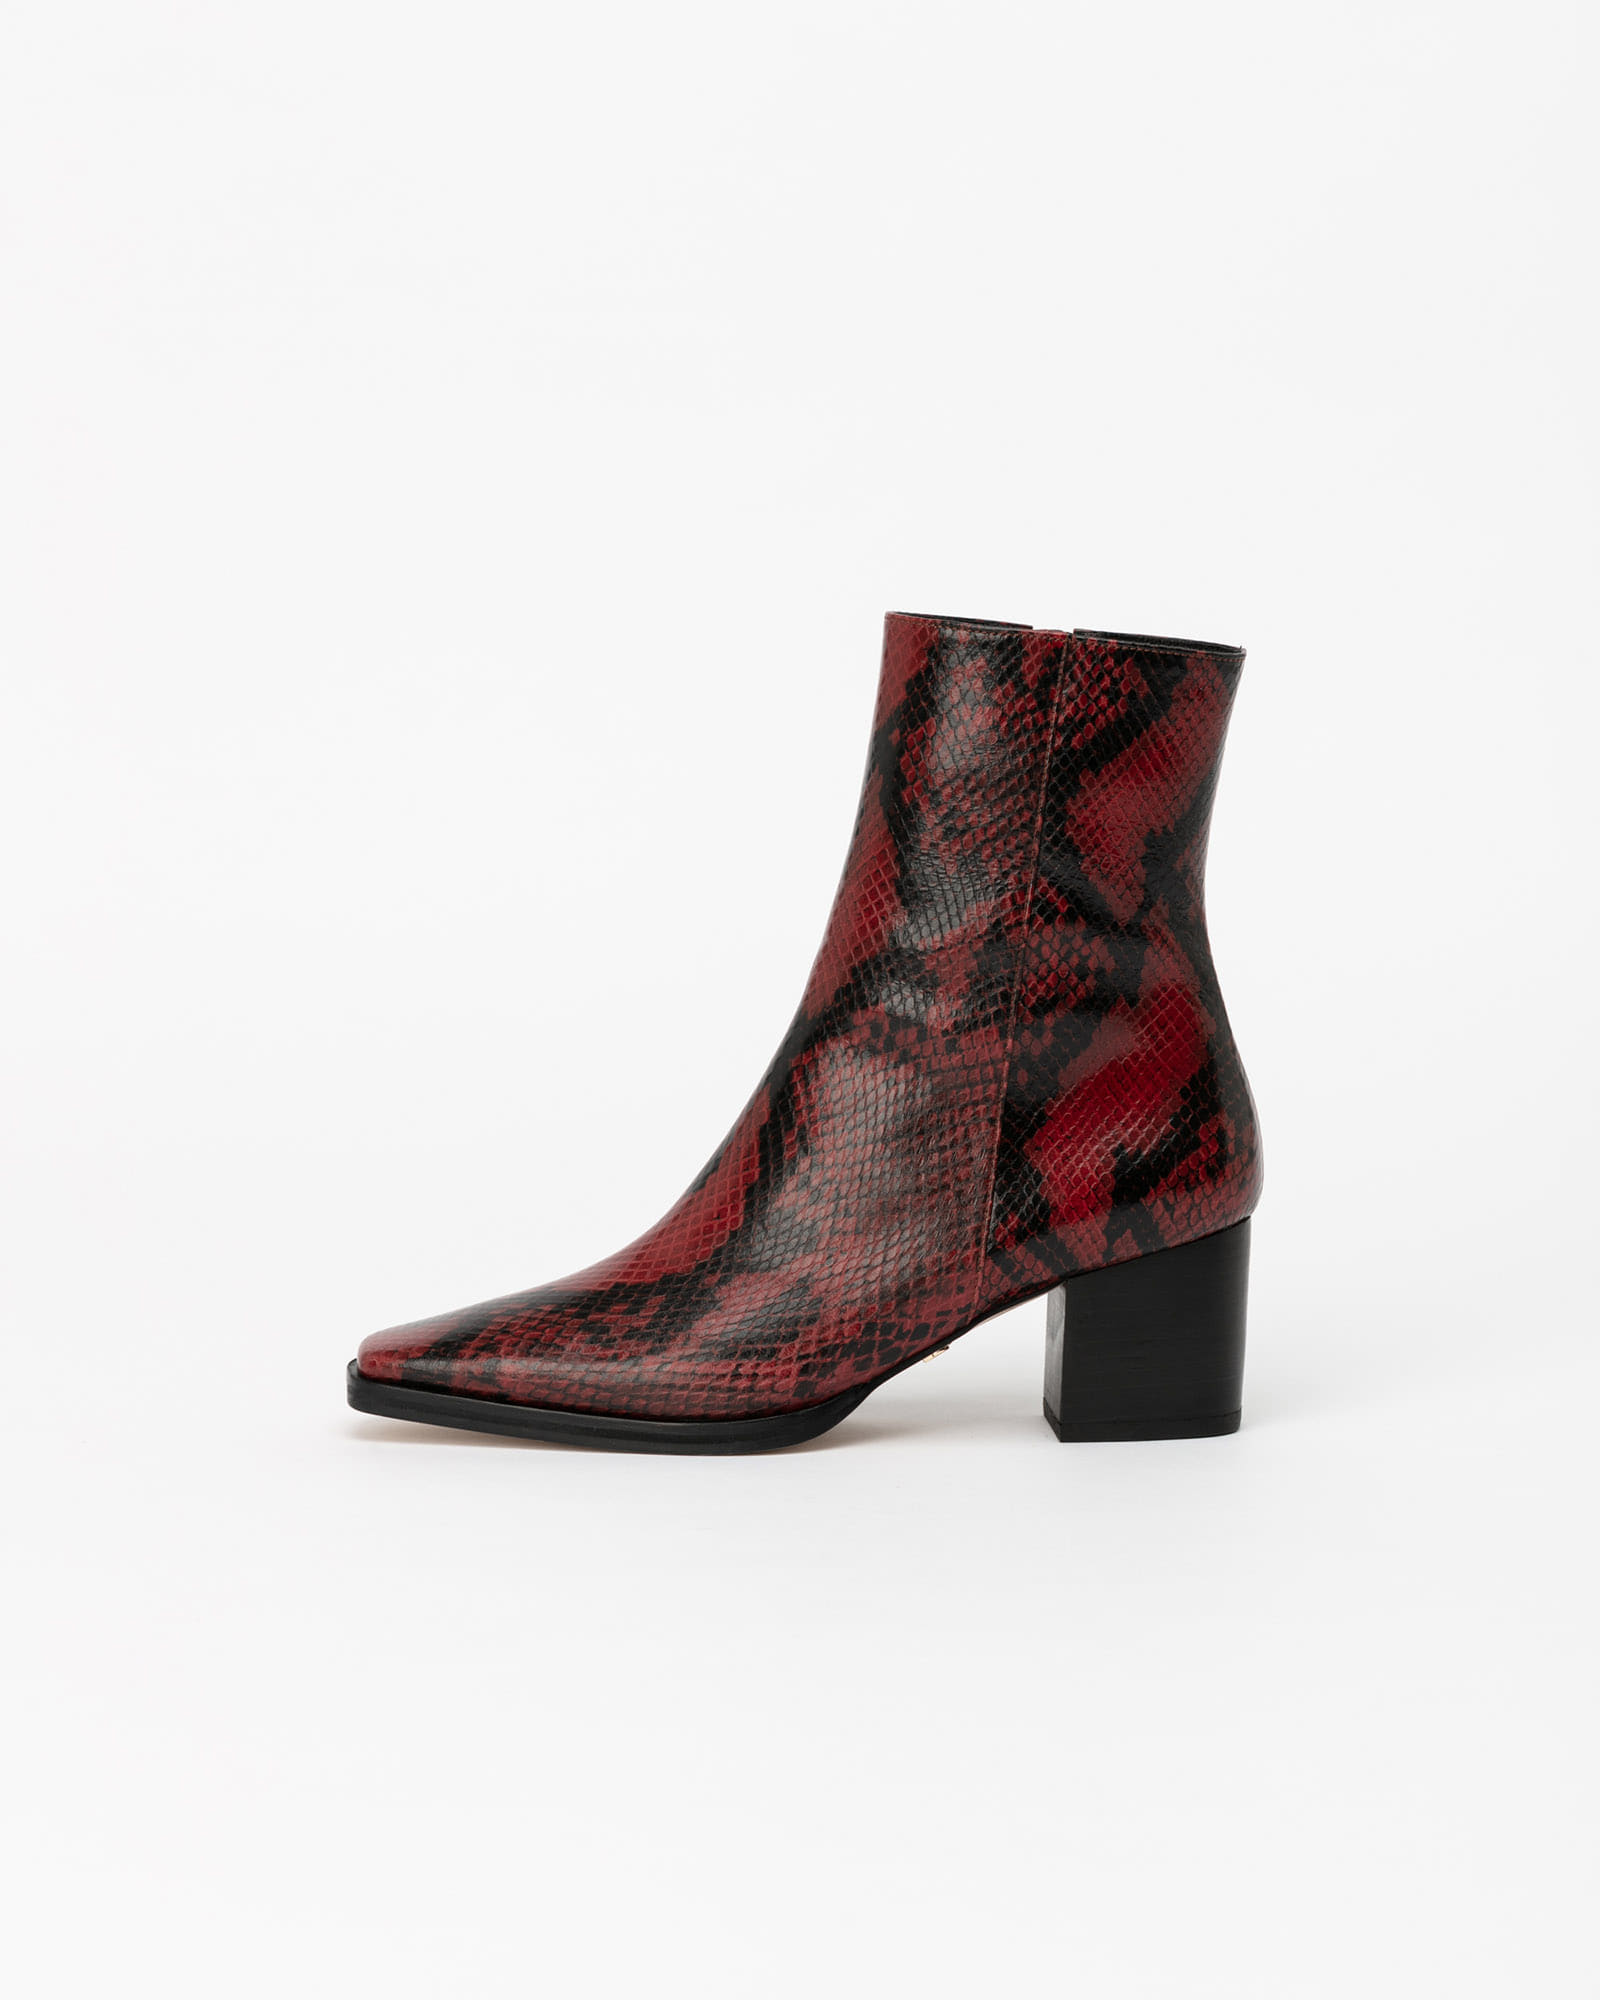 Mariana Boots in Red Python Prints